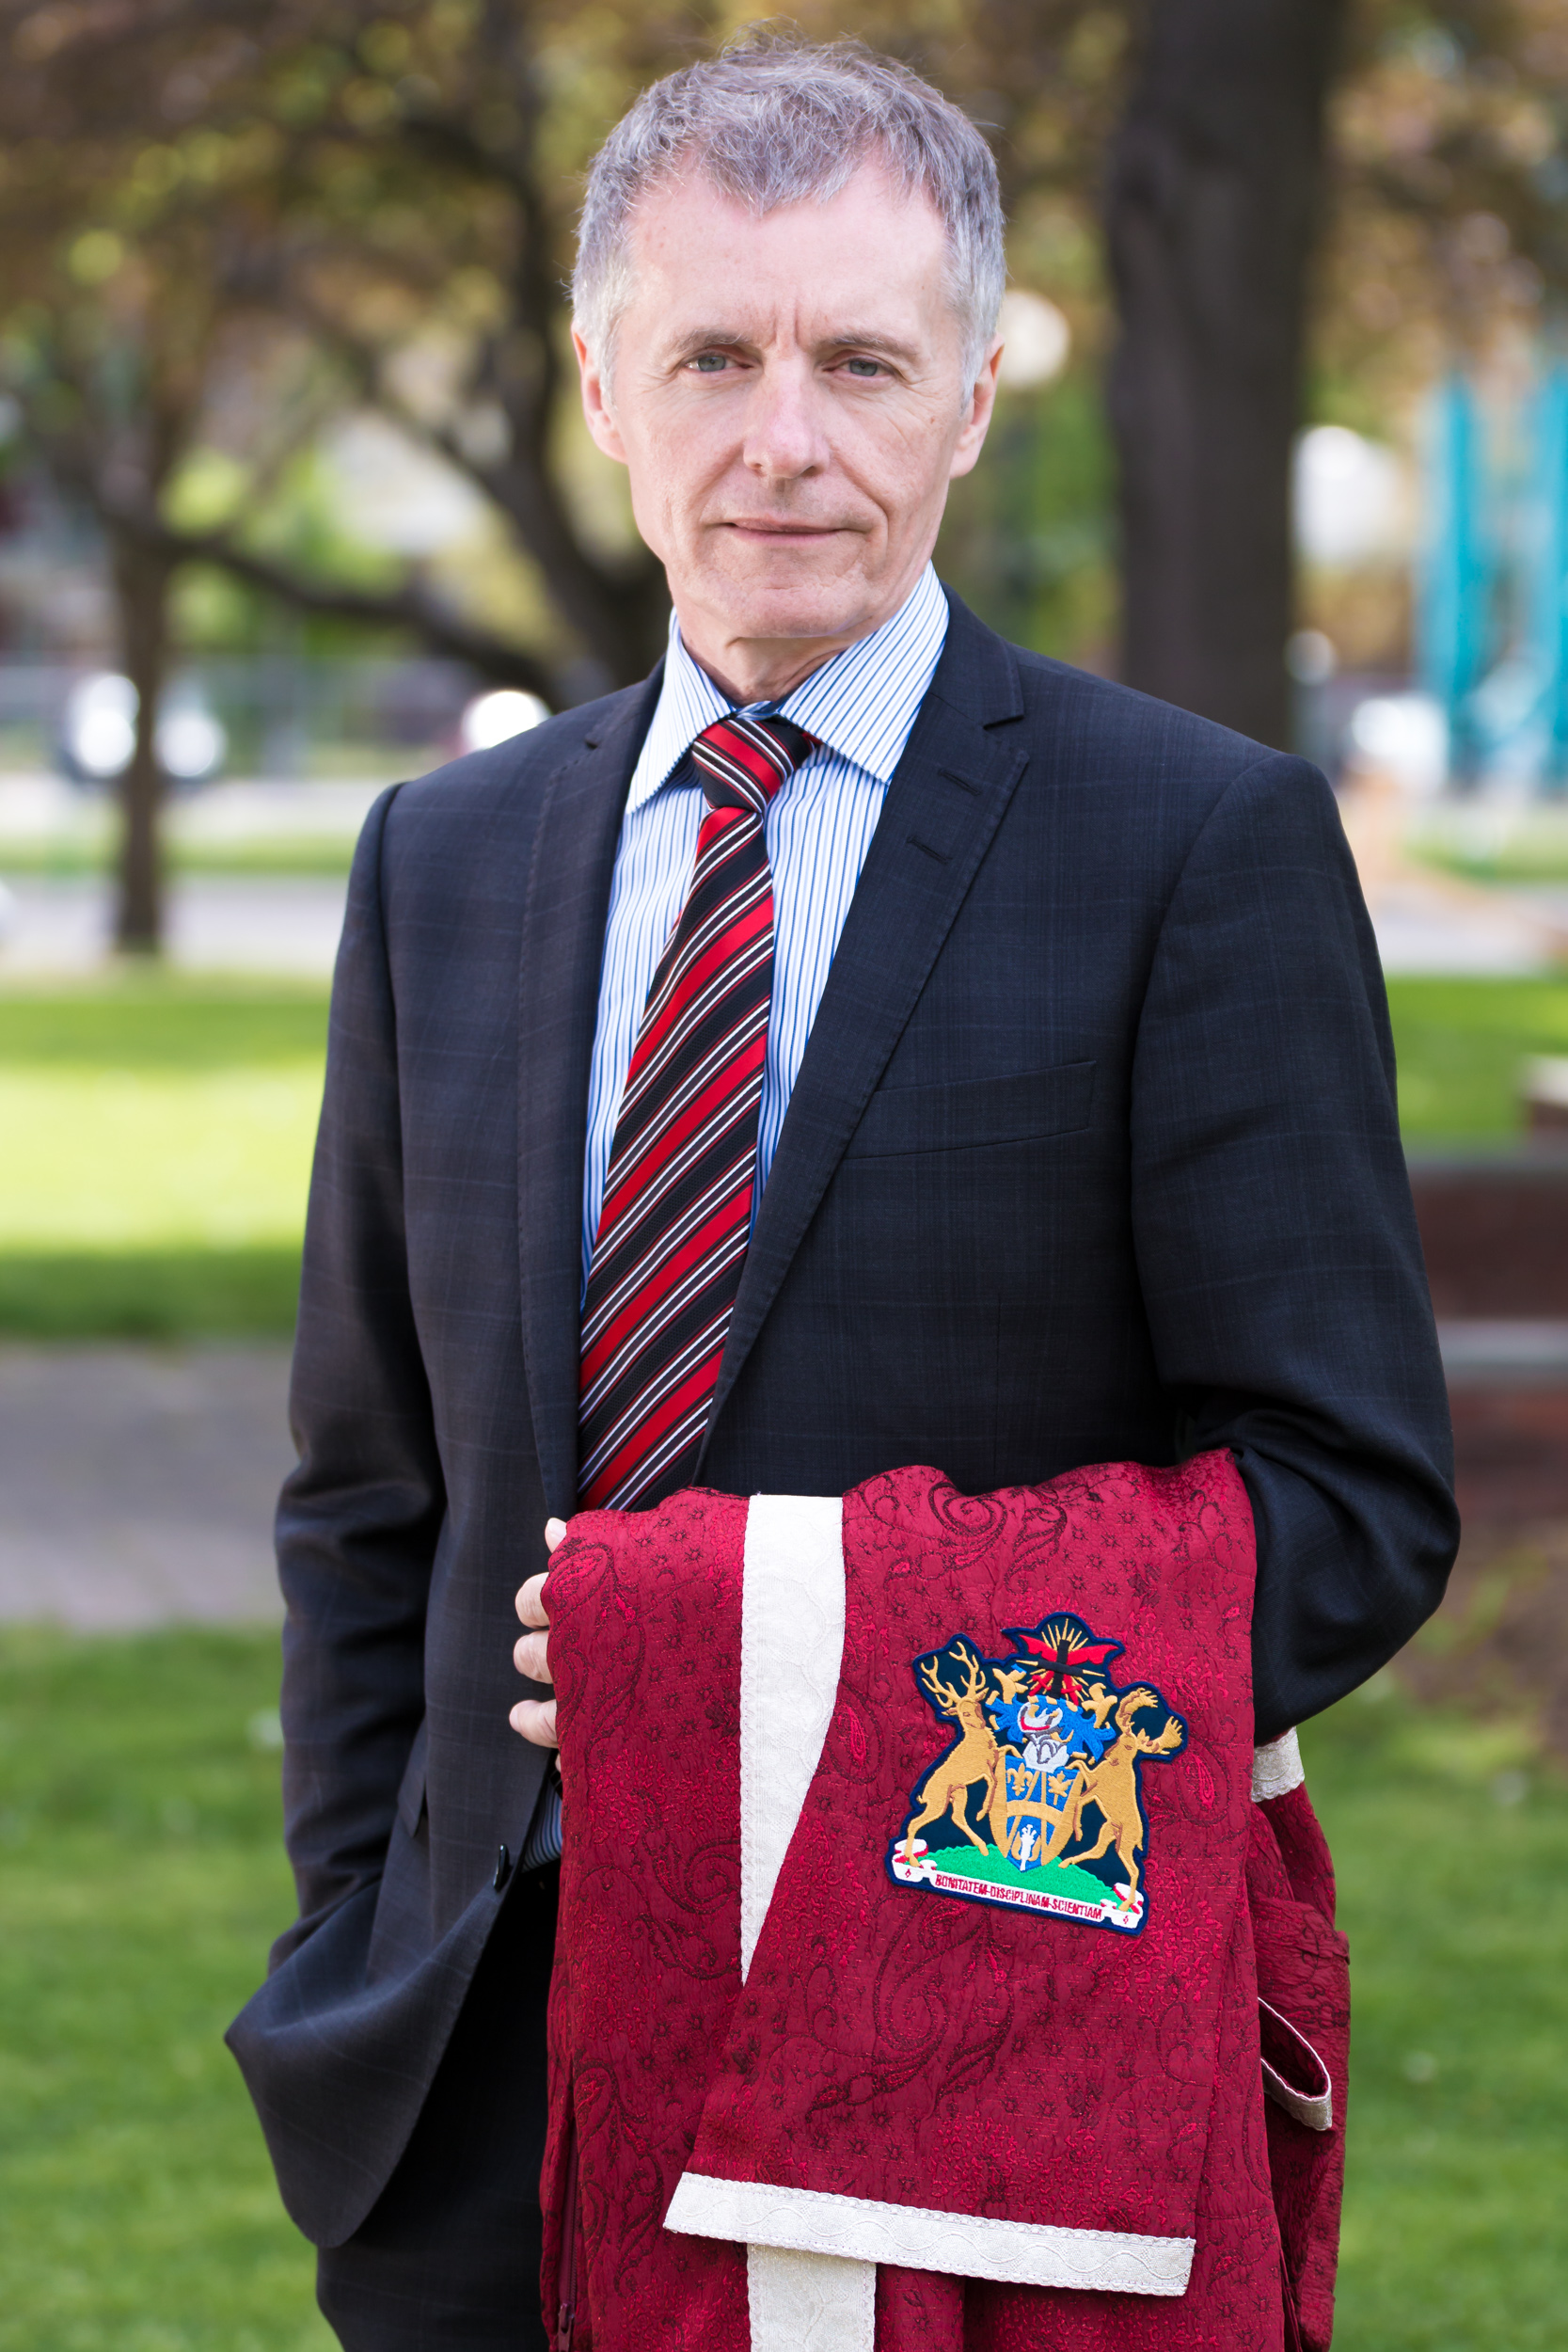 Alan Wildeman - President & Vice-Chancellor University of Windsor